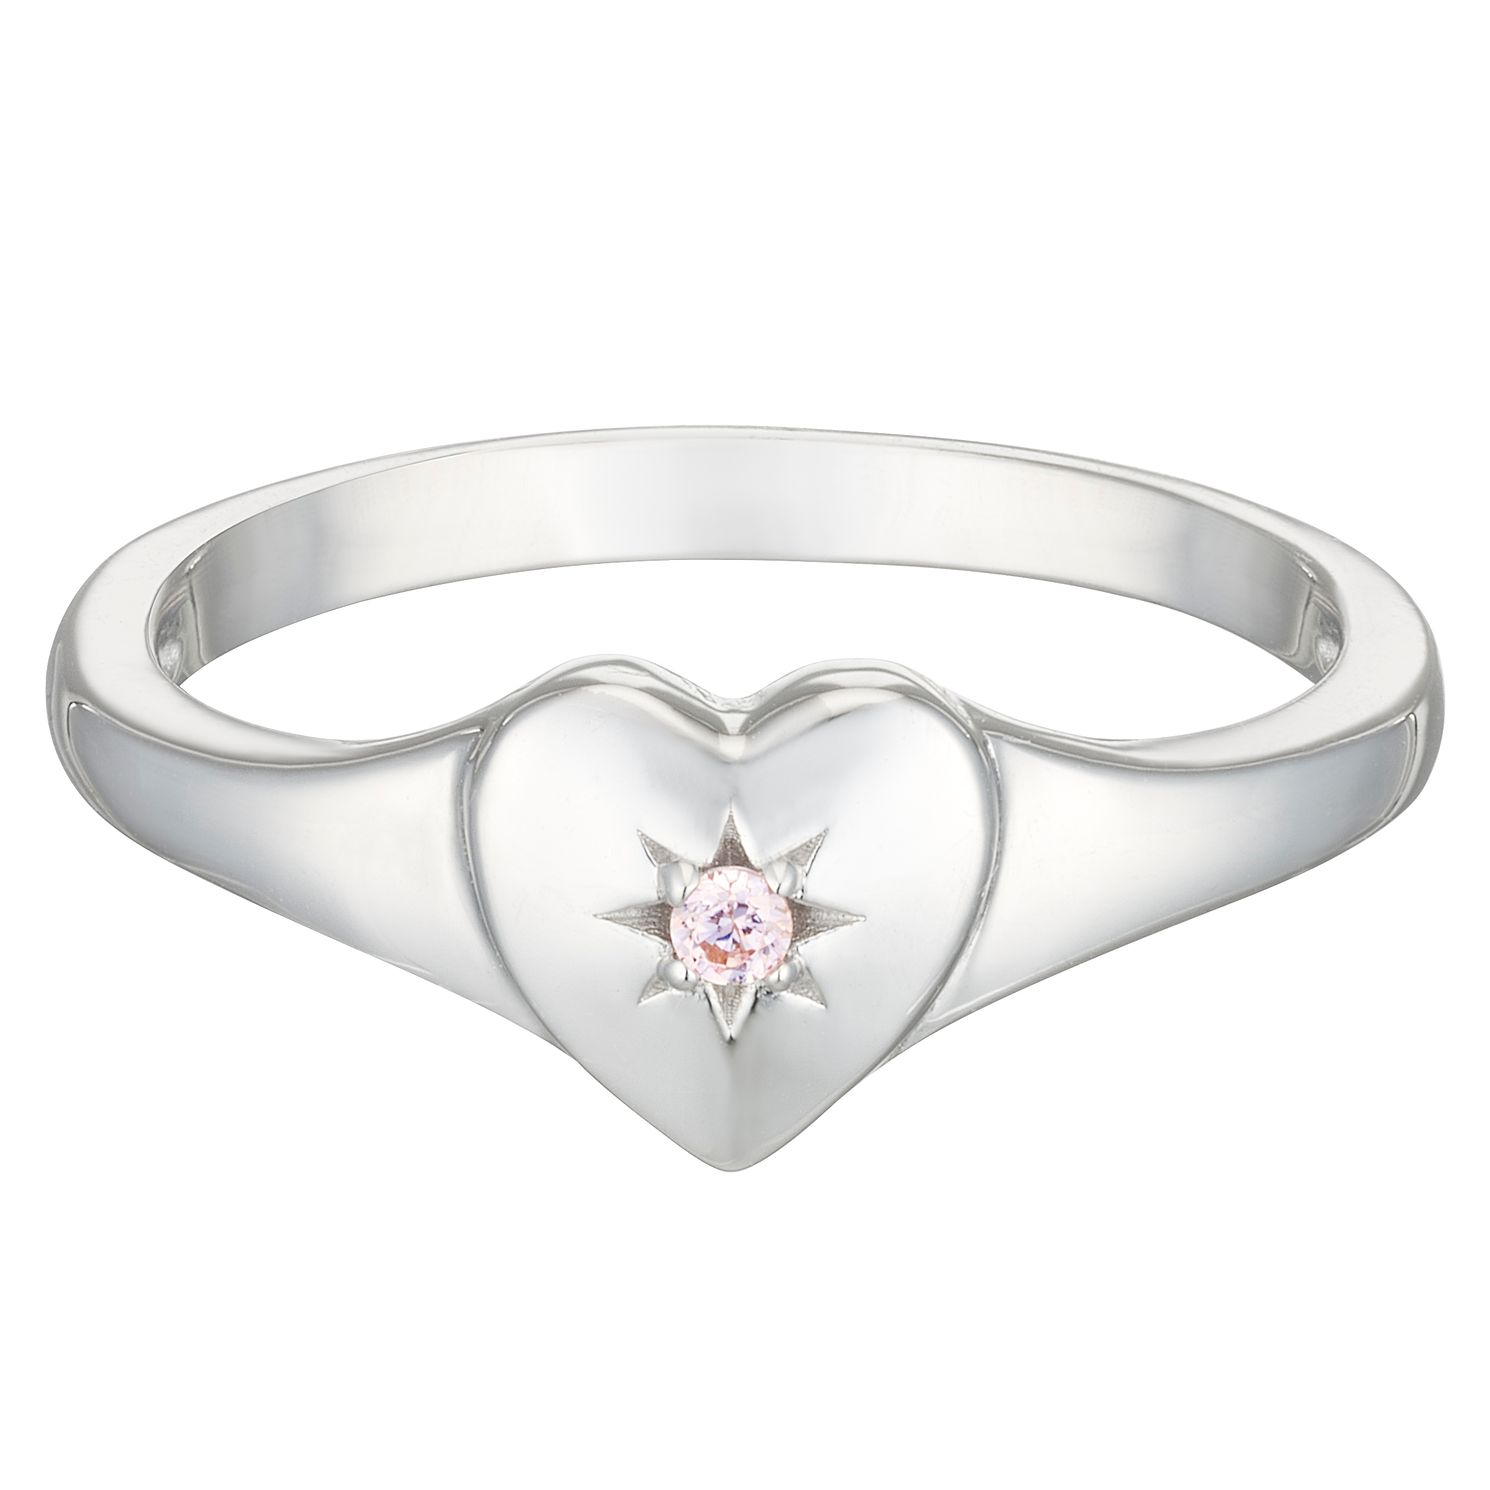 Sterling Silver Children's Cubic Zirconia Heart Ring Large - Product number 3916324